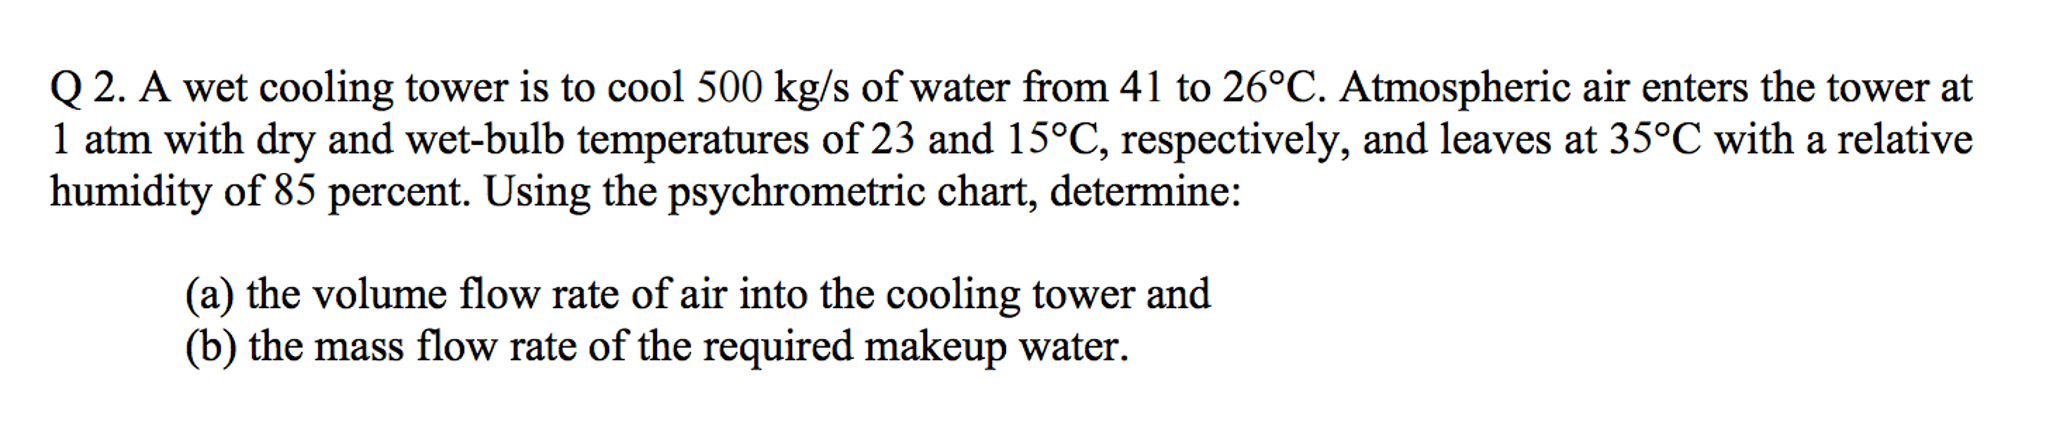 Solved: A Wet Cooling Tower Is To Cool 500 Kg/s Of Water F